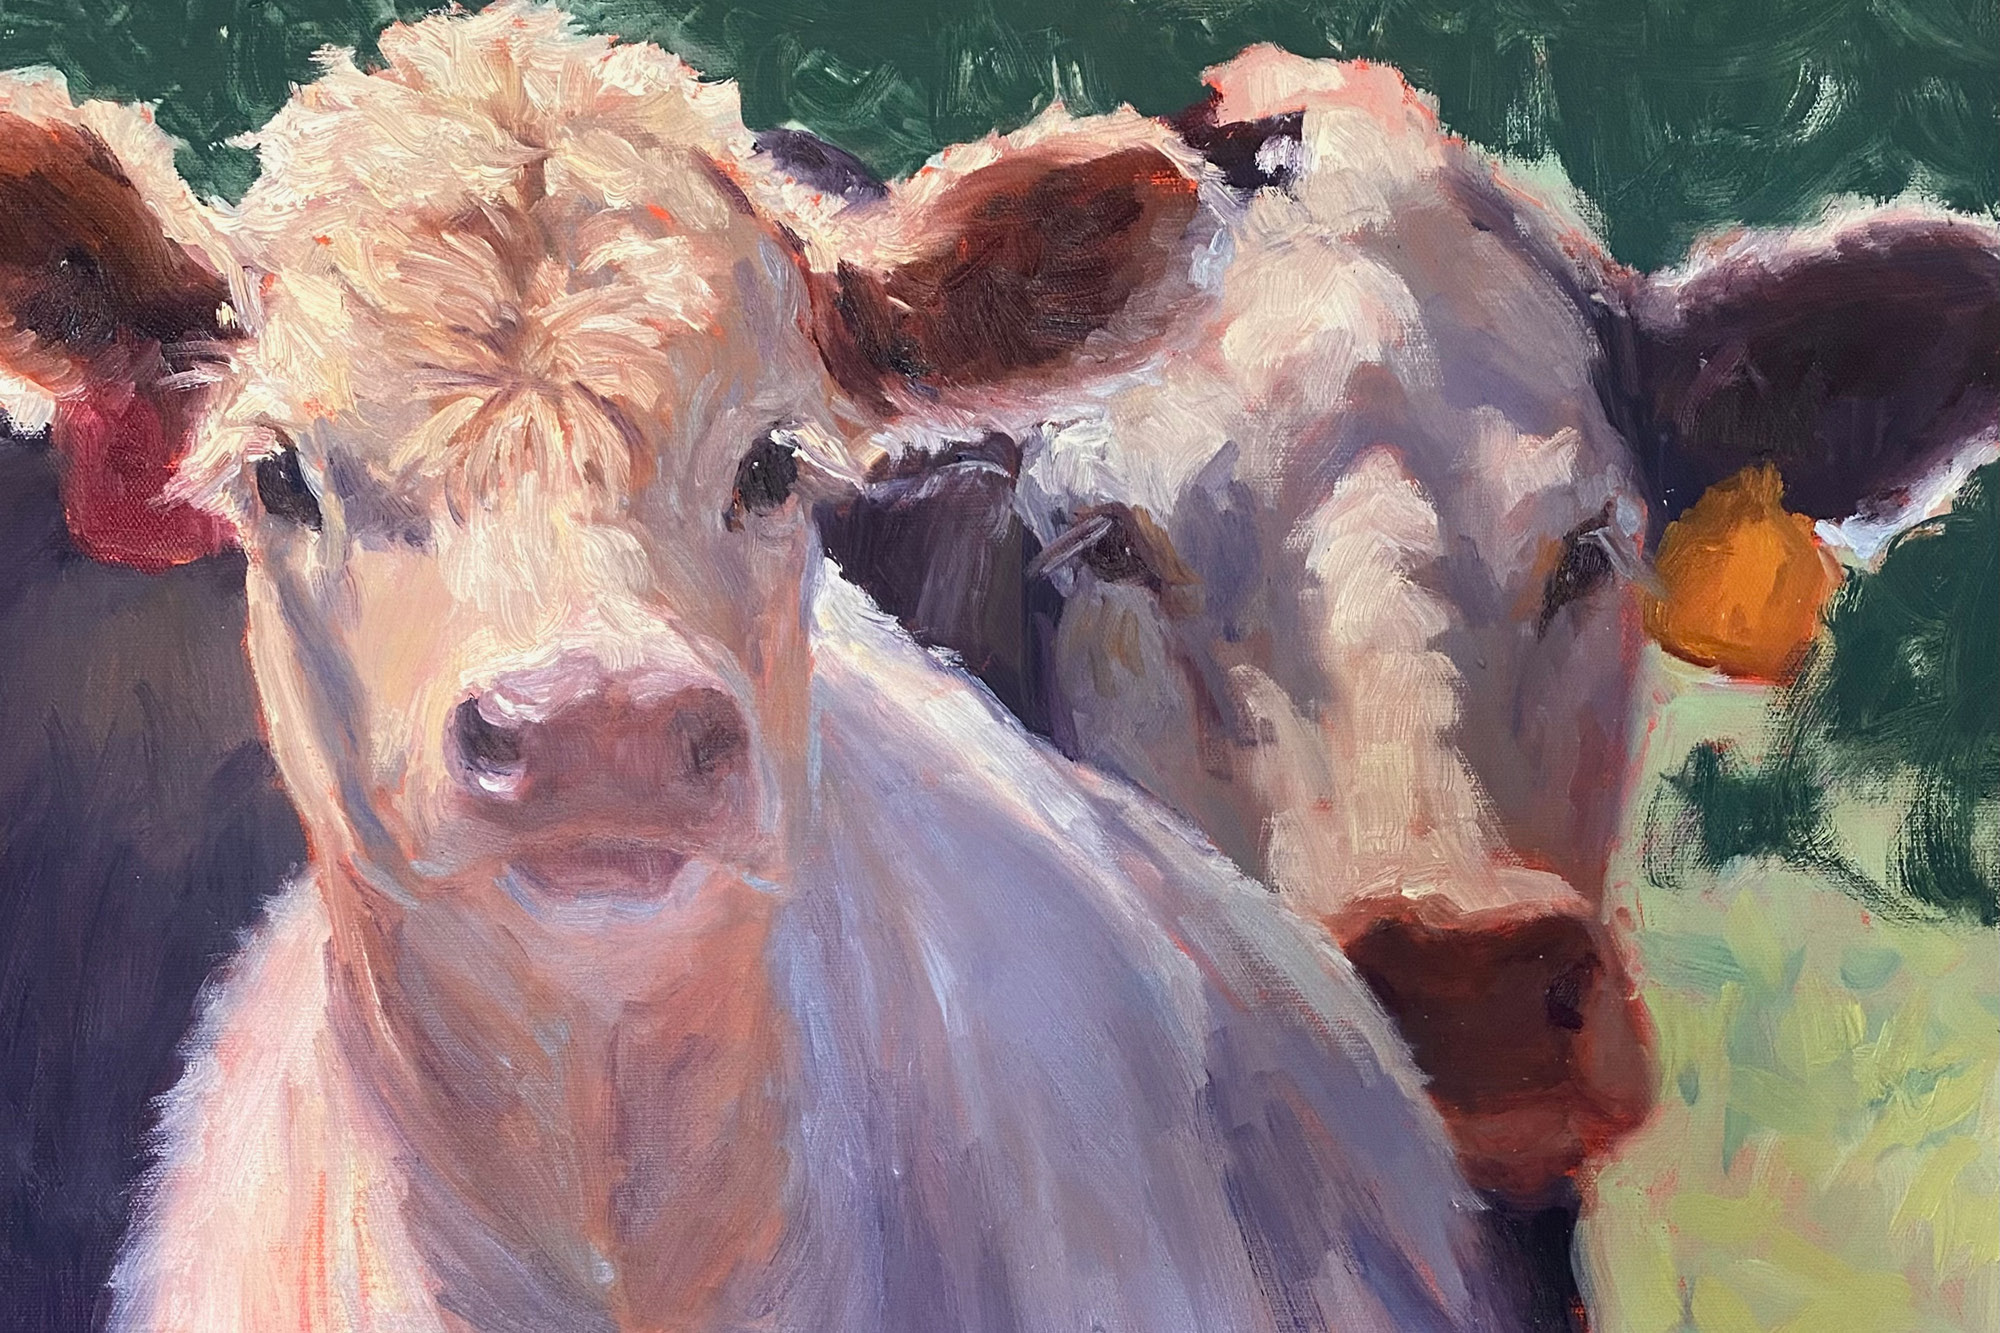 Painting of cows.